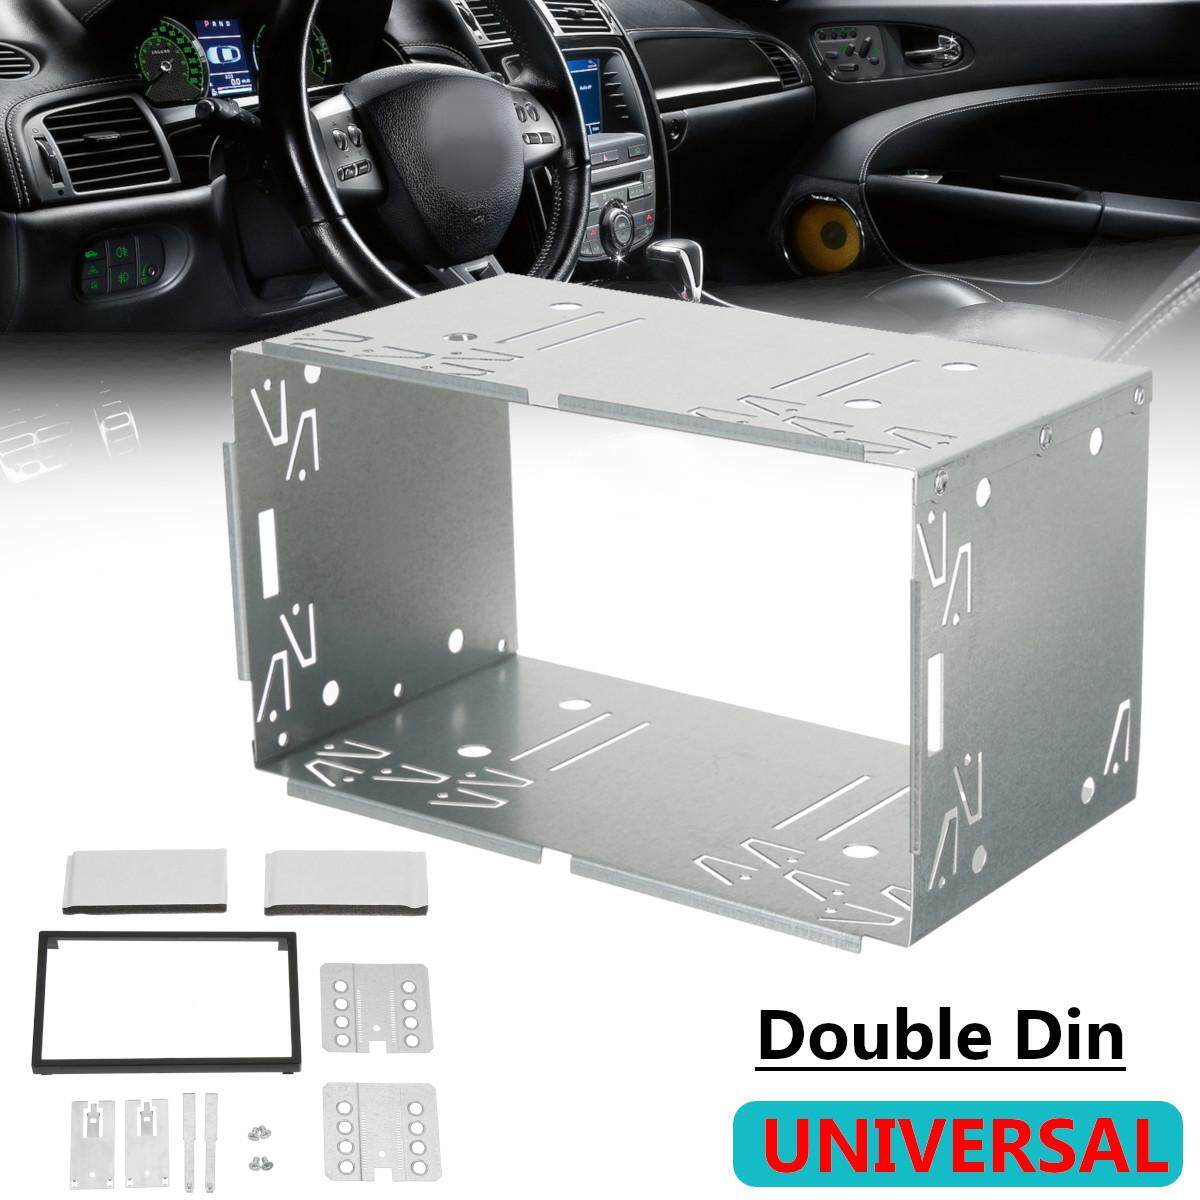 Car Stereo Receivers Buy At Best Price In Fiesta Fitting Kit Fascia Panel Wiring Harness Aerial Carsara 62 Universal Installation Frame Set Mounting Fascias For 178mmx100mm